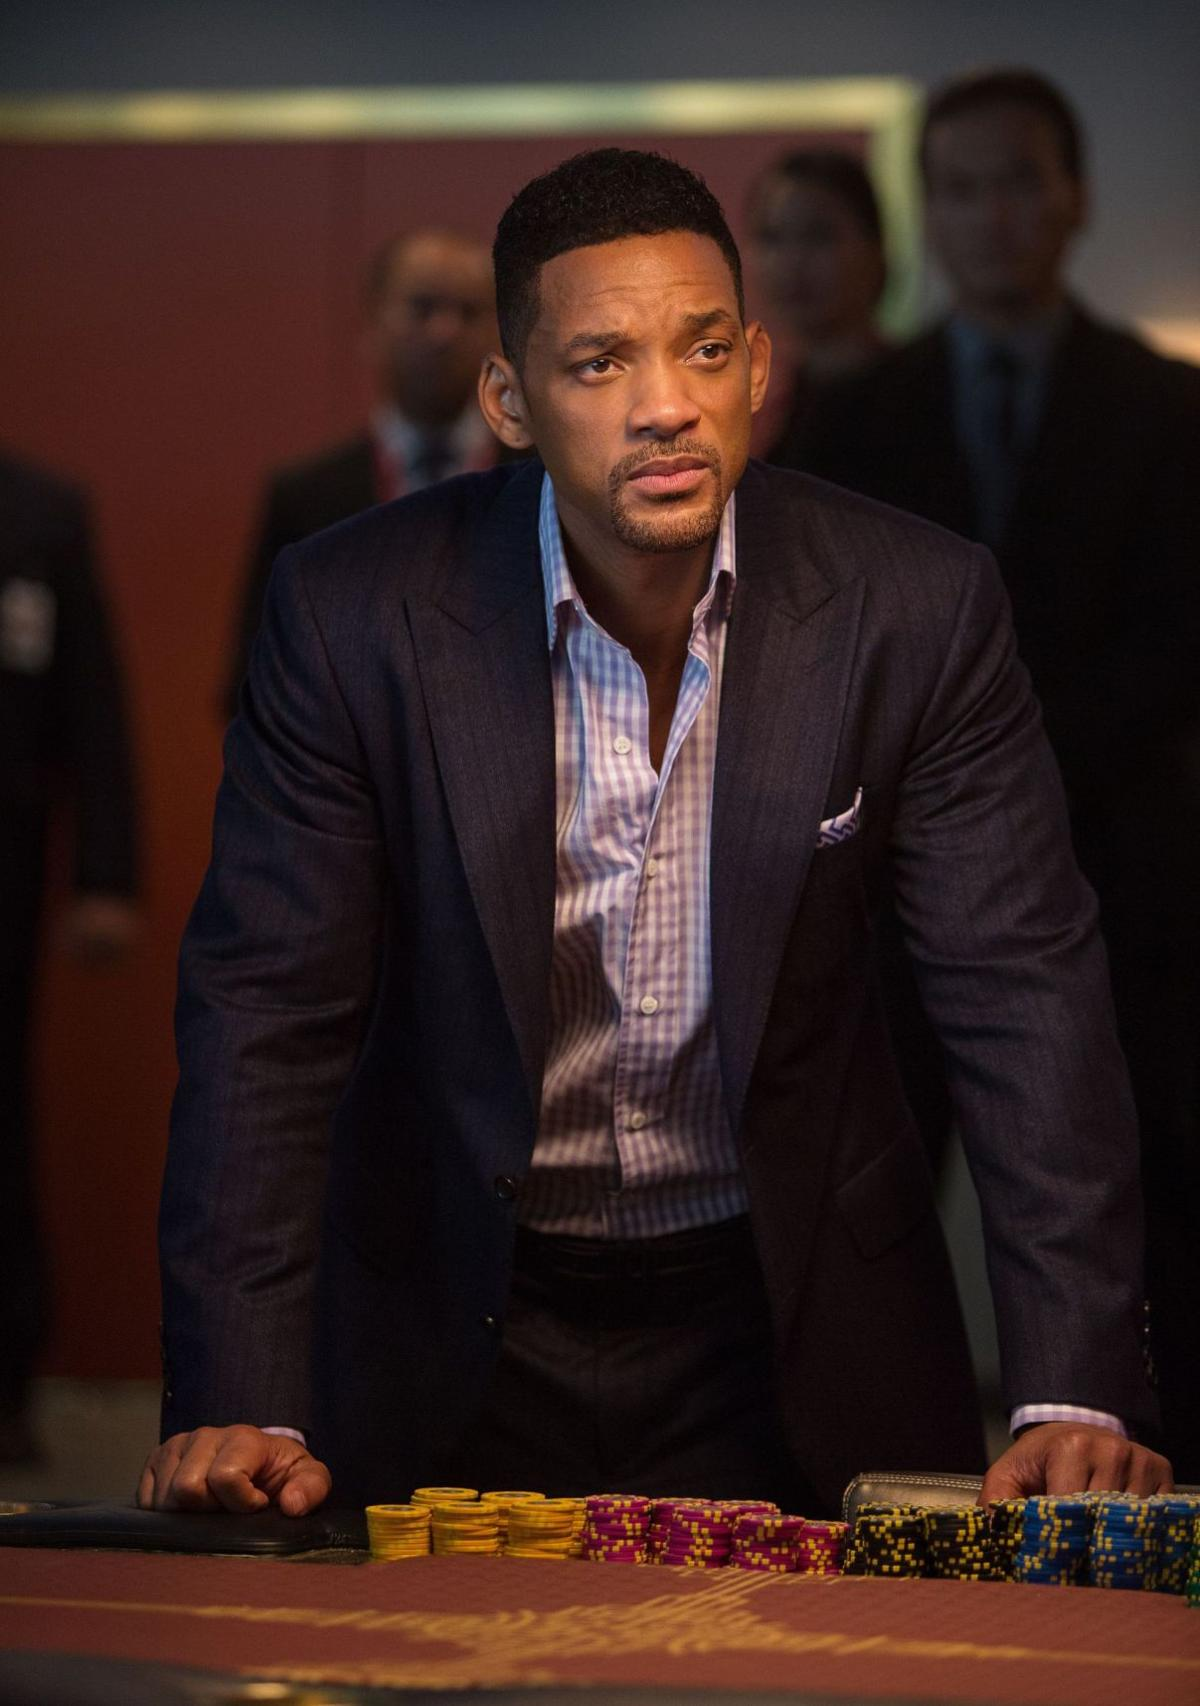 Will Smith learns to 'quiet the warrior'